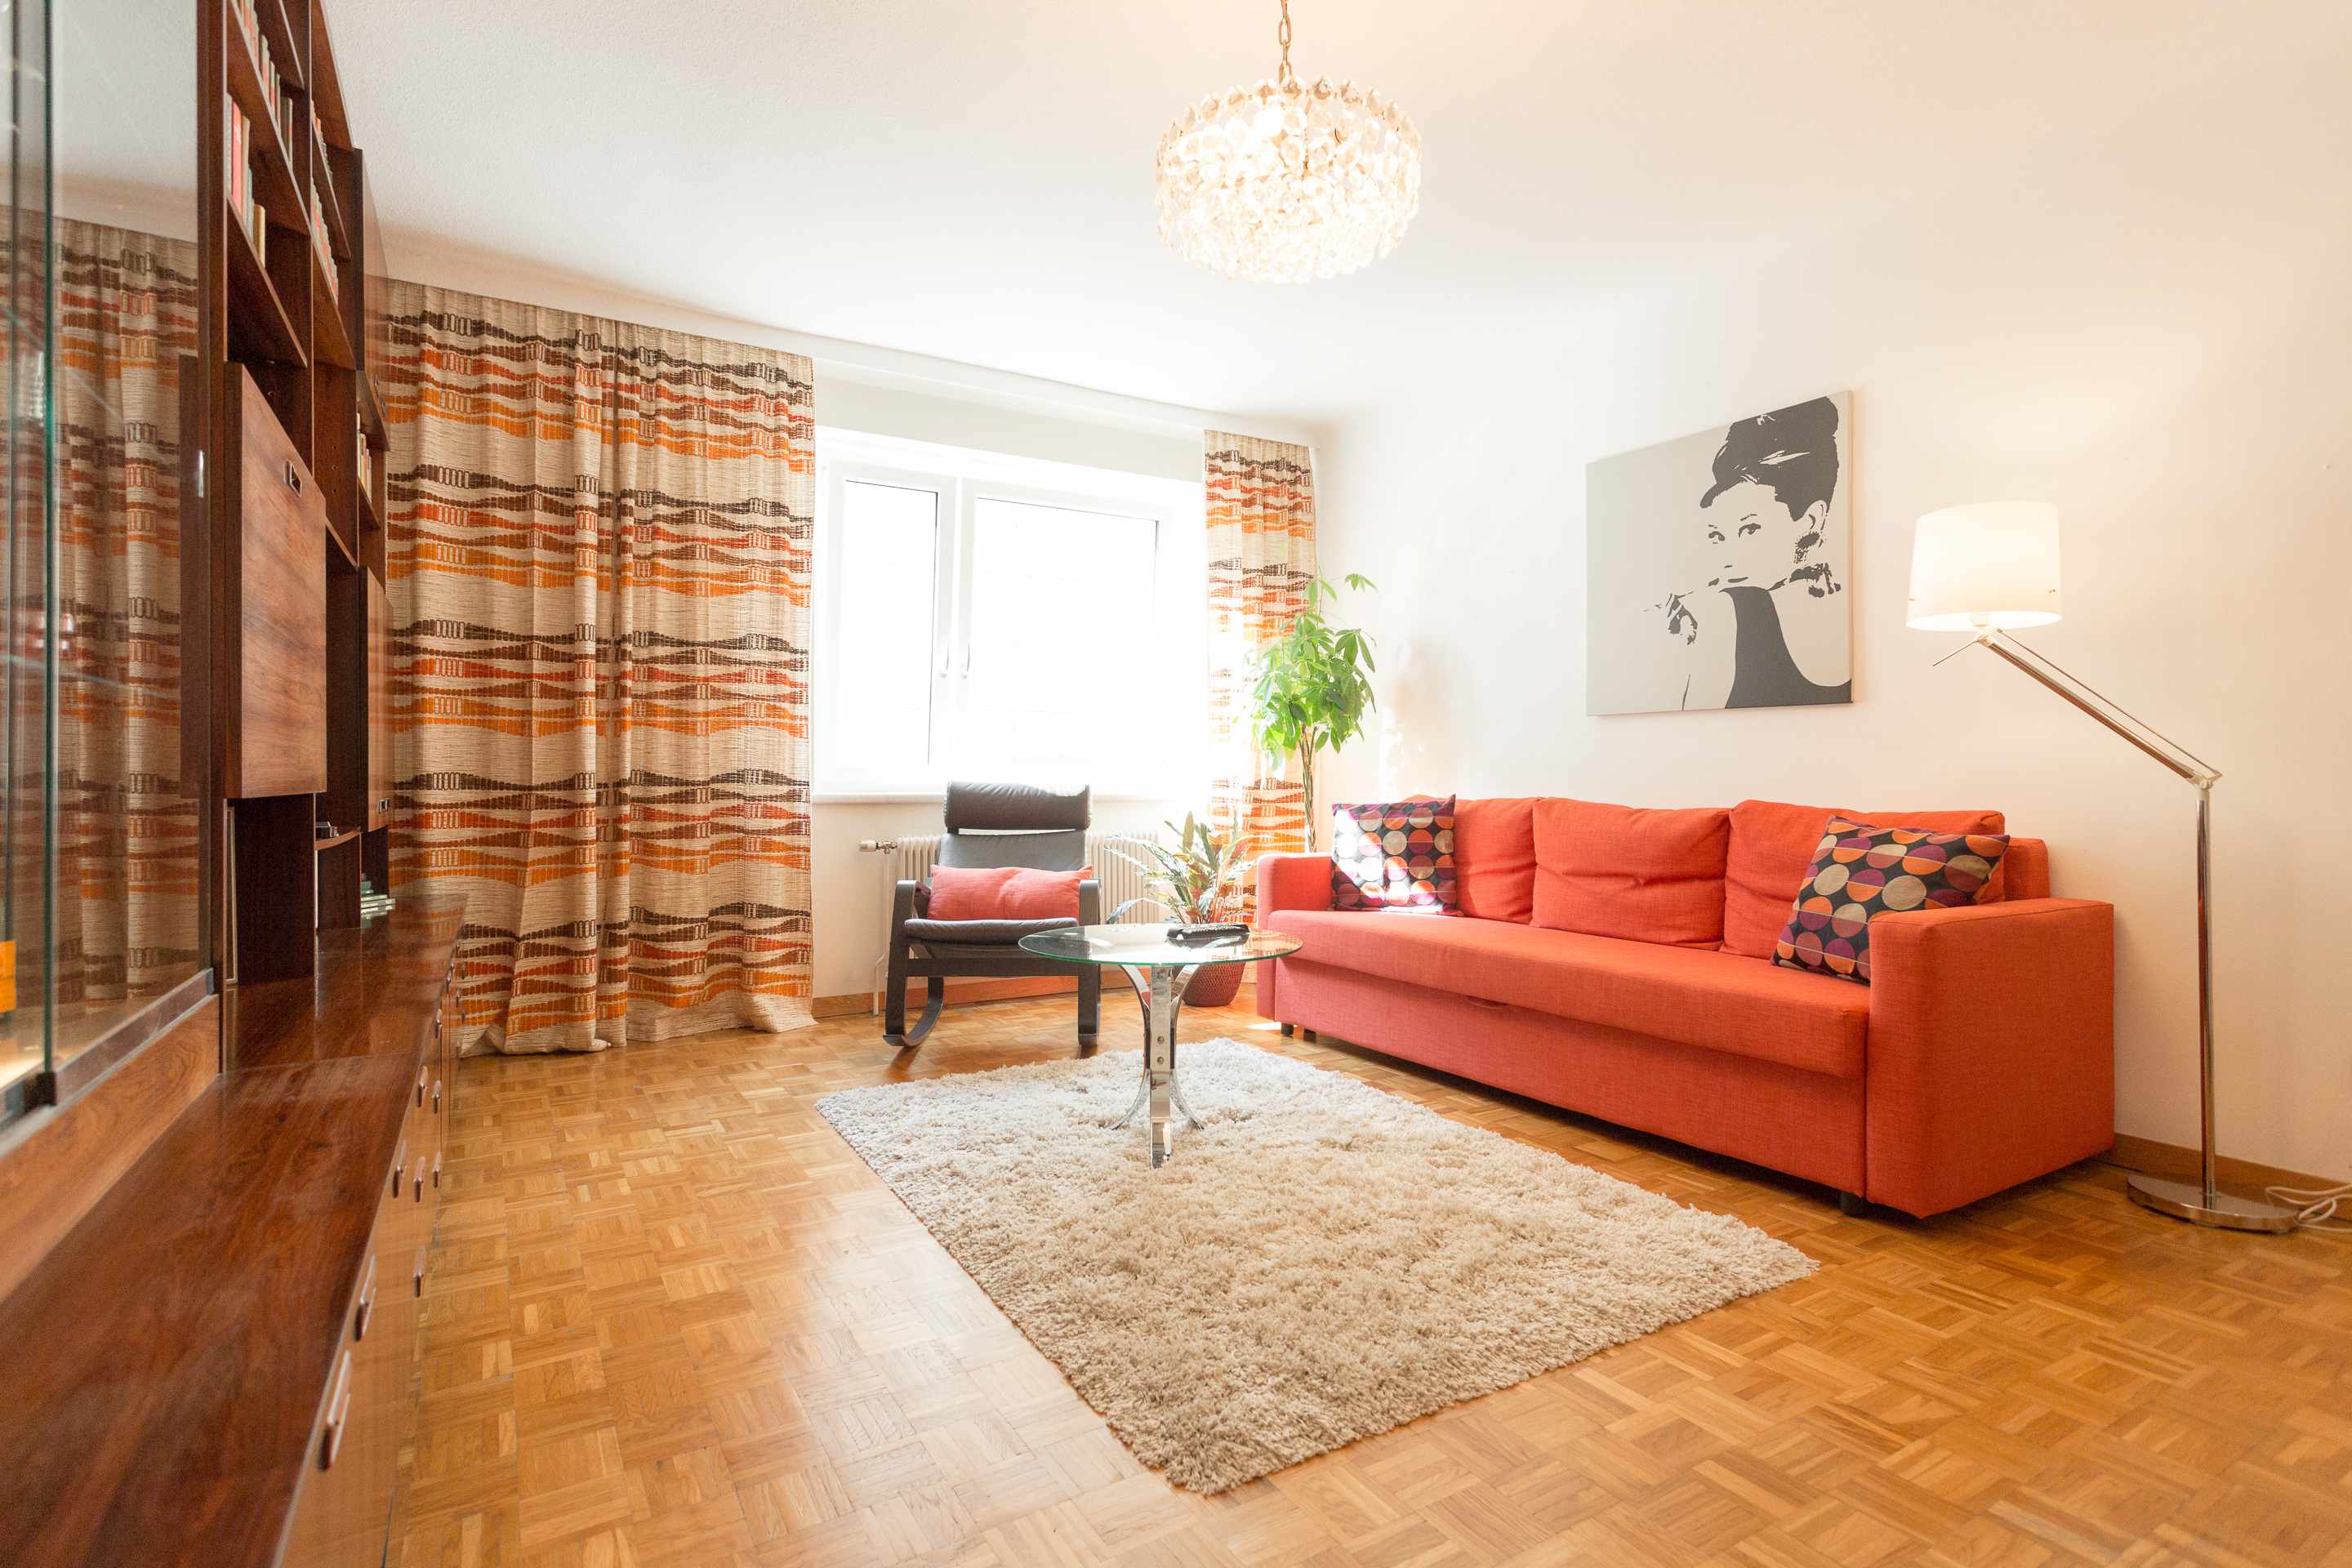 B Famous Schlafsofas 70's Retro Viennese Apartment 6 Min To City Center - Flats For Rent In Vienna, Wien, Austria